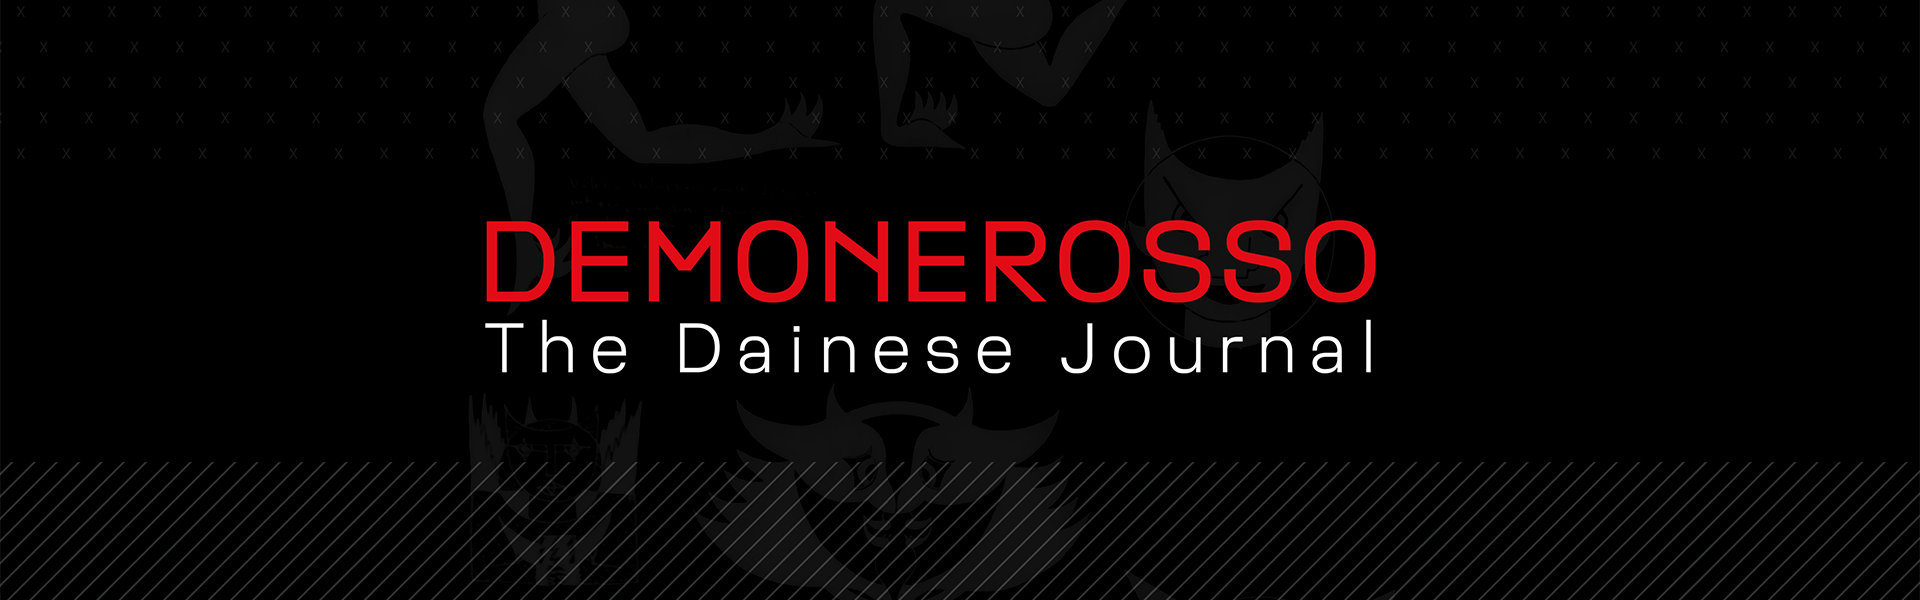 Demonerosso: the Dainese journal